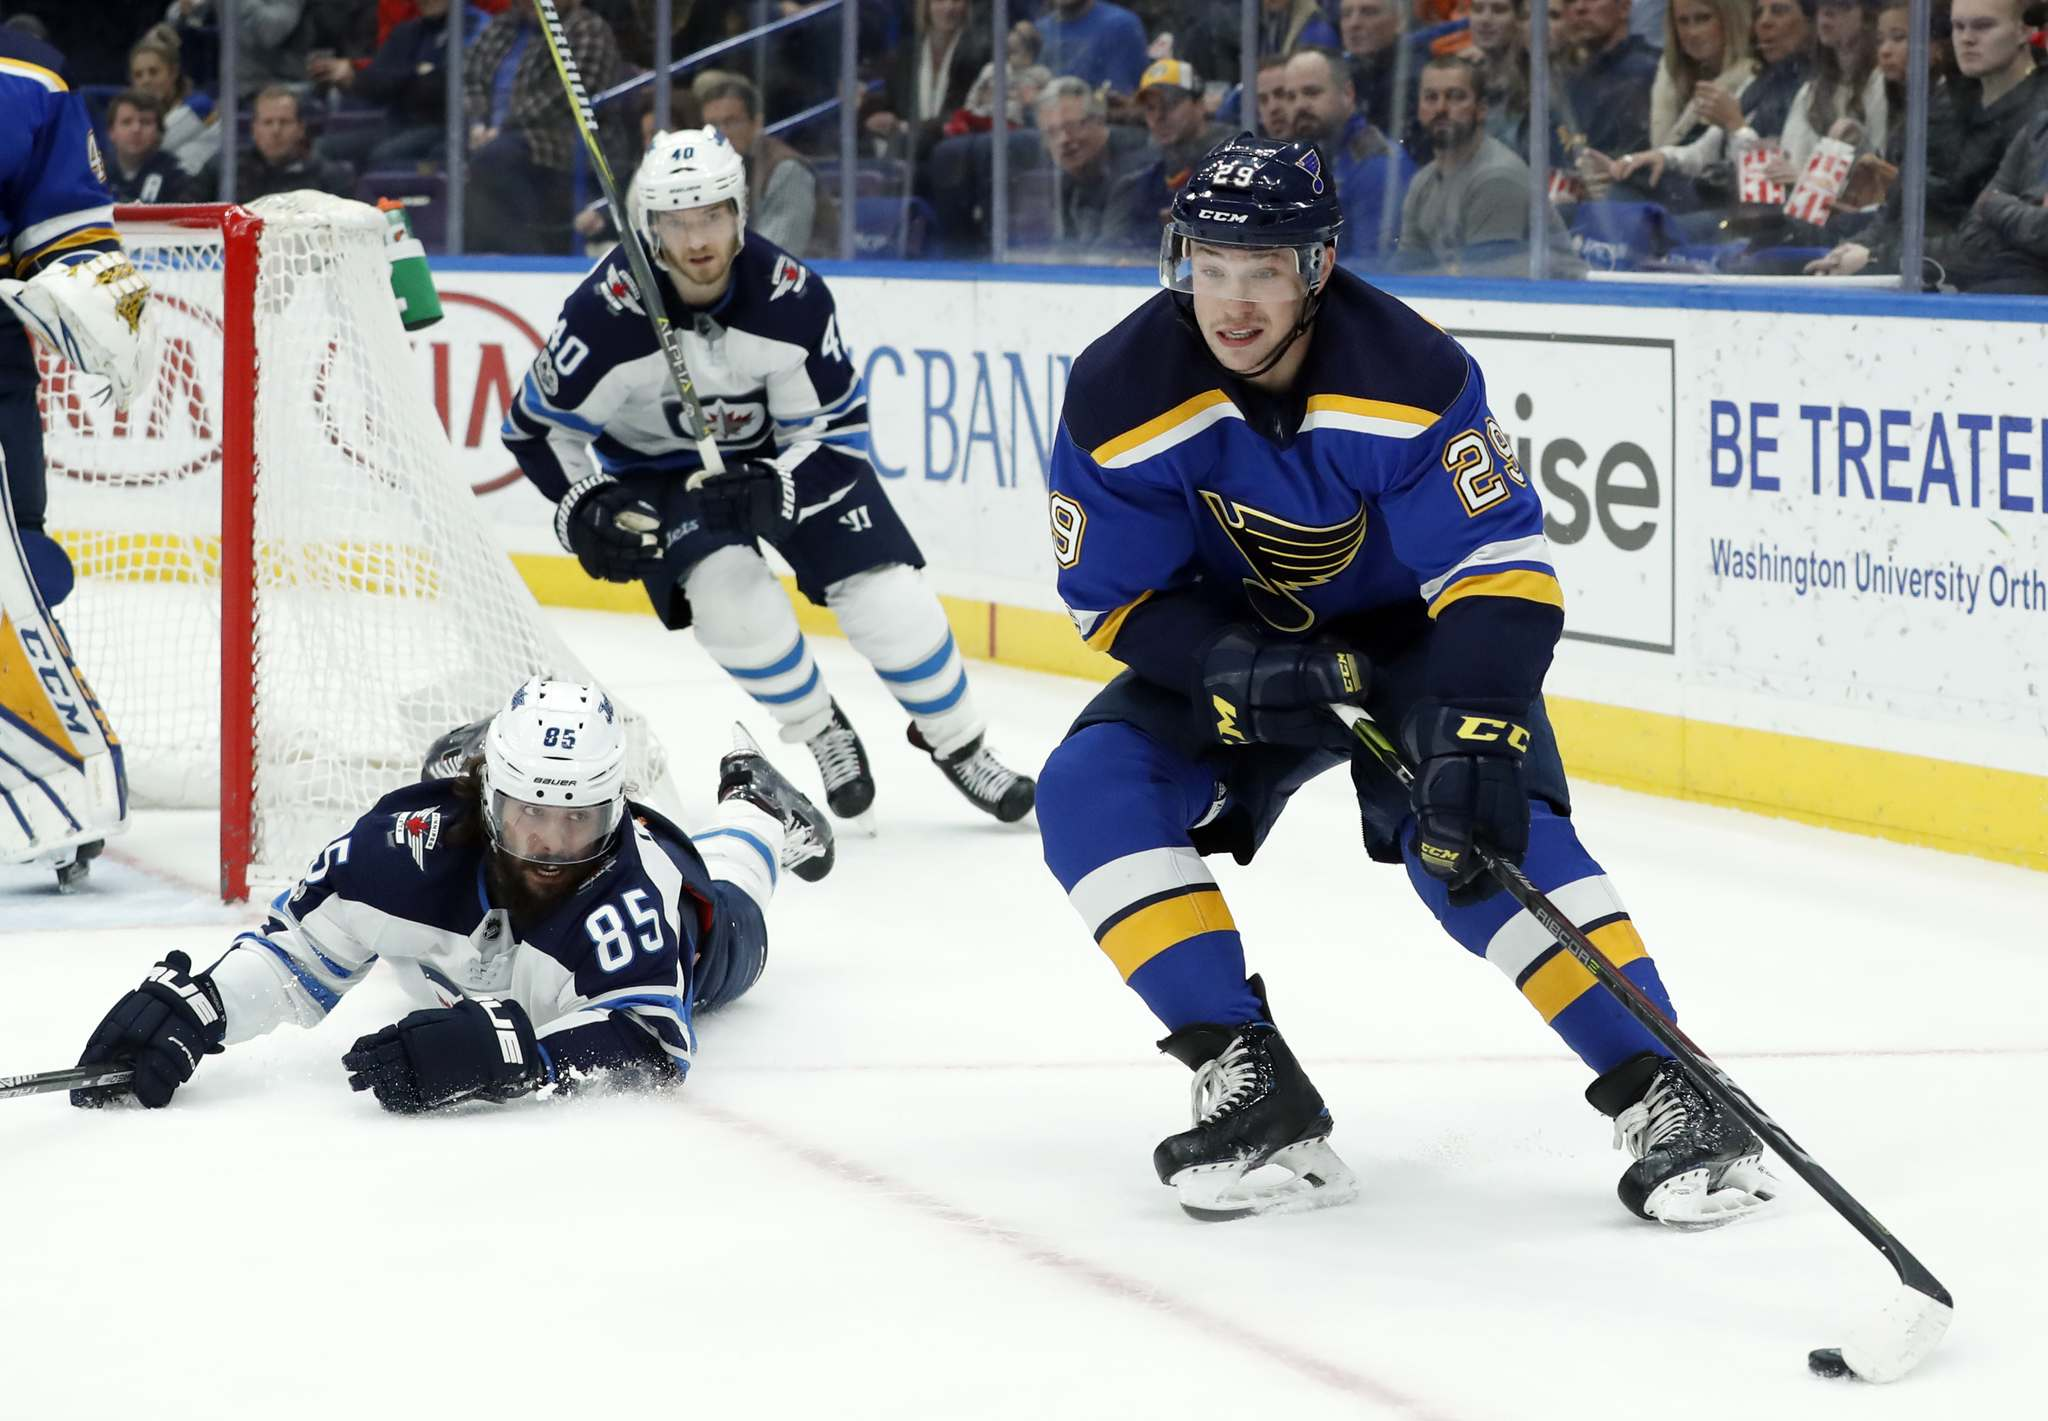 Winnipeg Jets vs. St. Louis Blues NHL Odds, Prediction